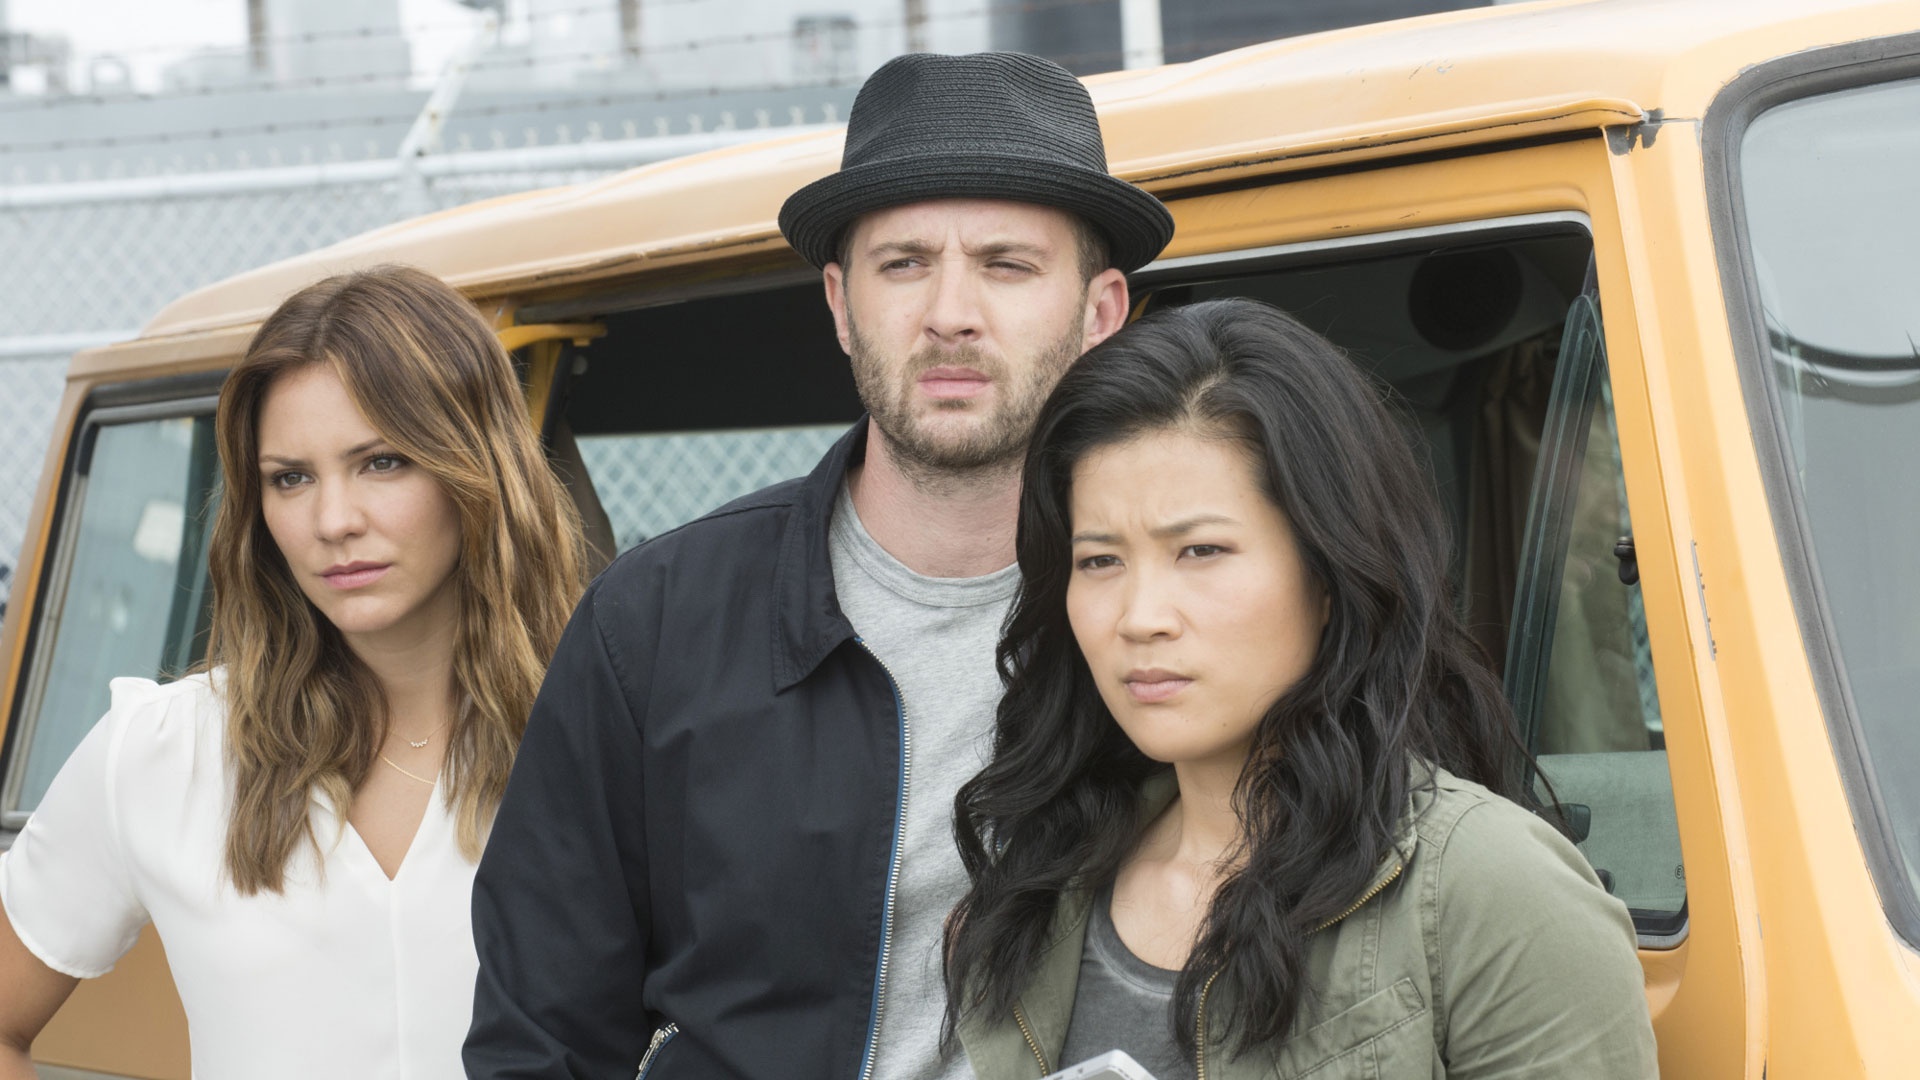 Katharine McPhee as Paige Dineen, Eddie Kaye Thomas as Toby Curtis, and Jadyn Wong as Happy Quinn